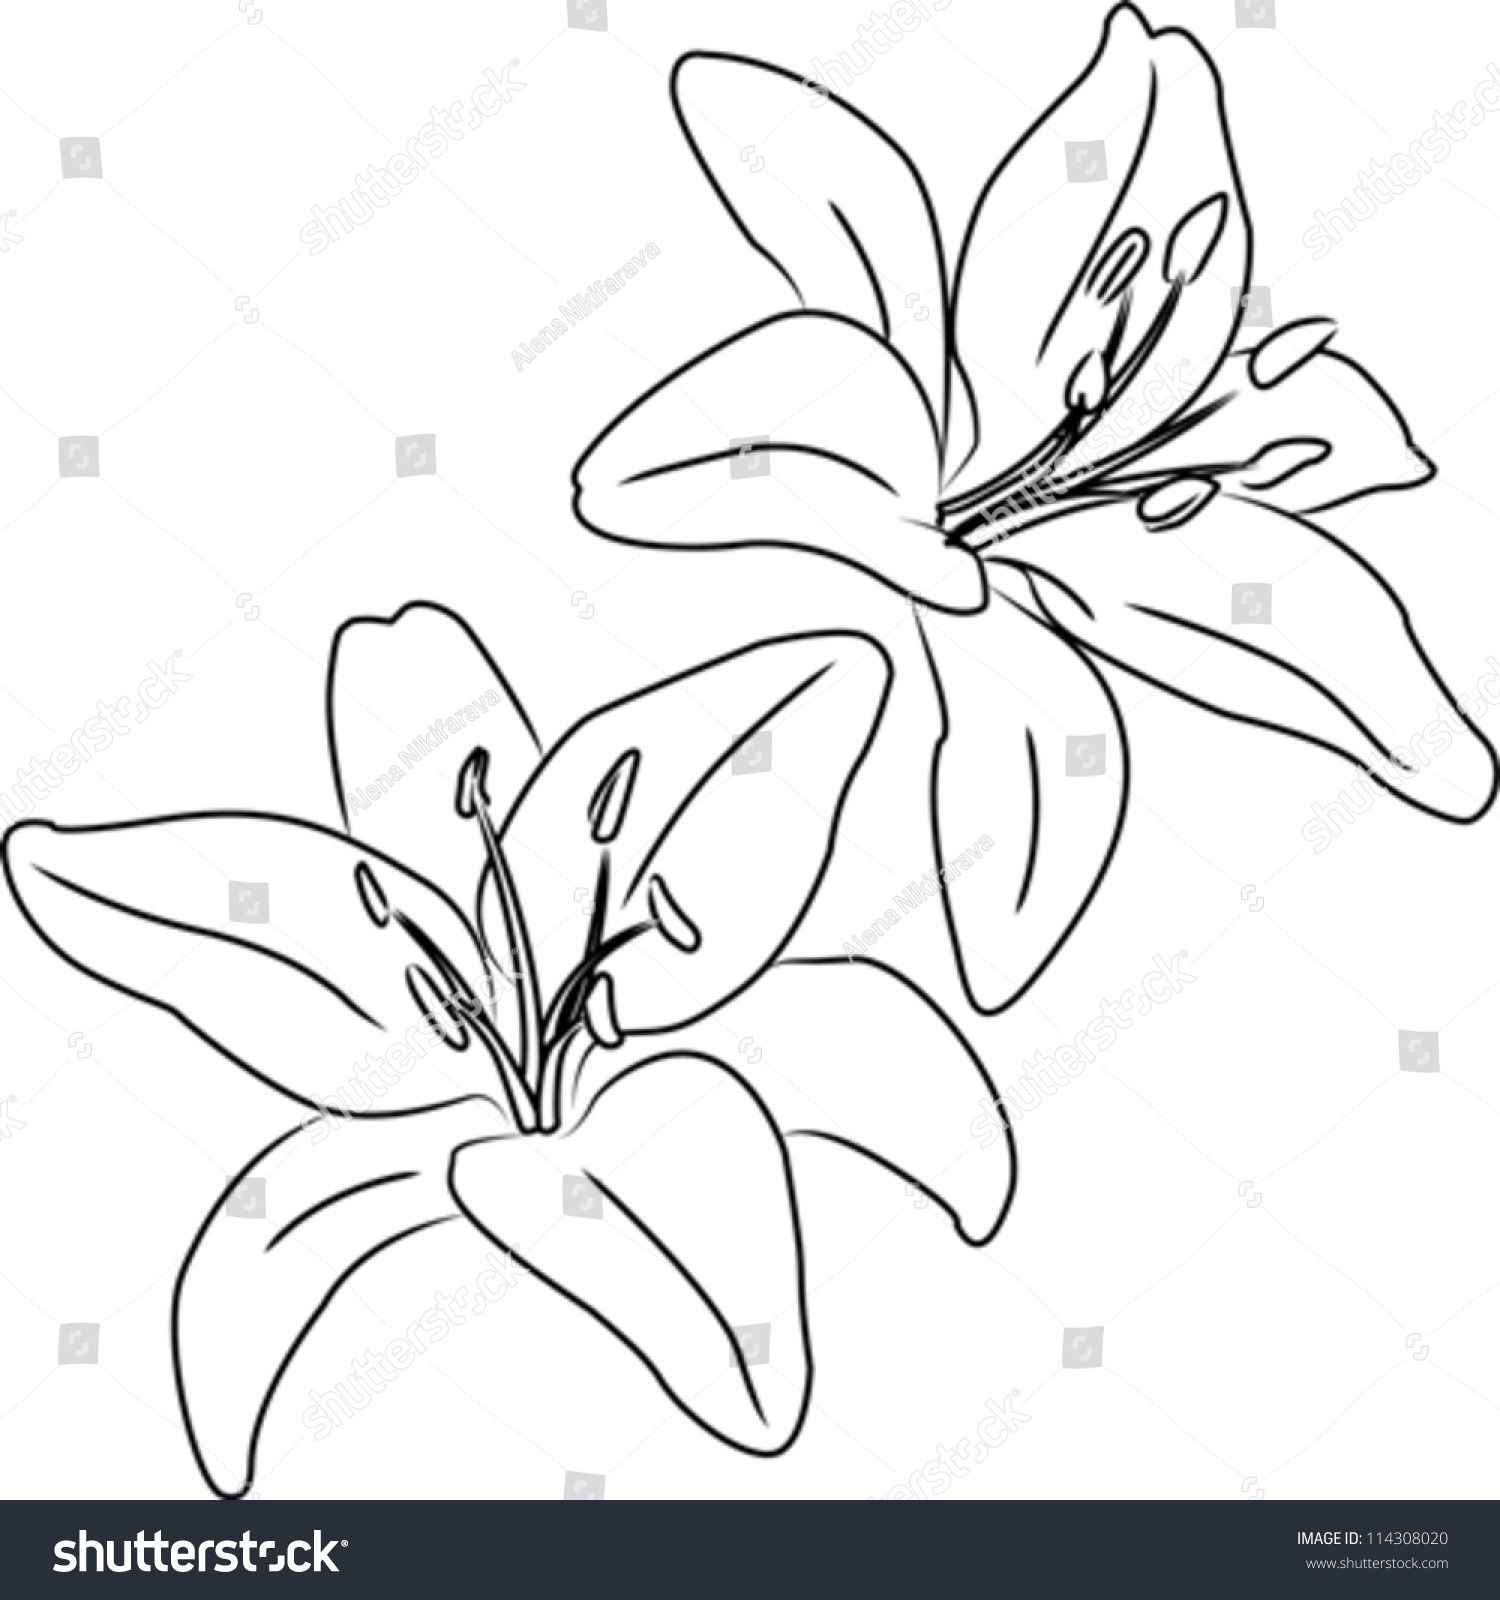 clipart free download Two blooming Asiatic lilies flowers vector sketch outline in